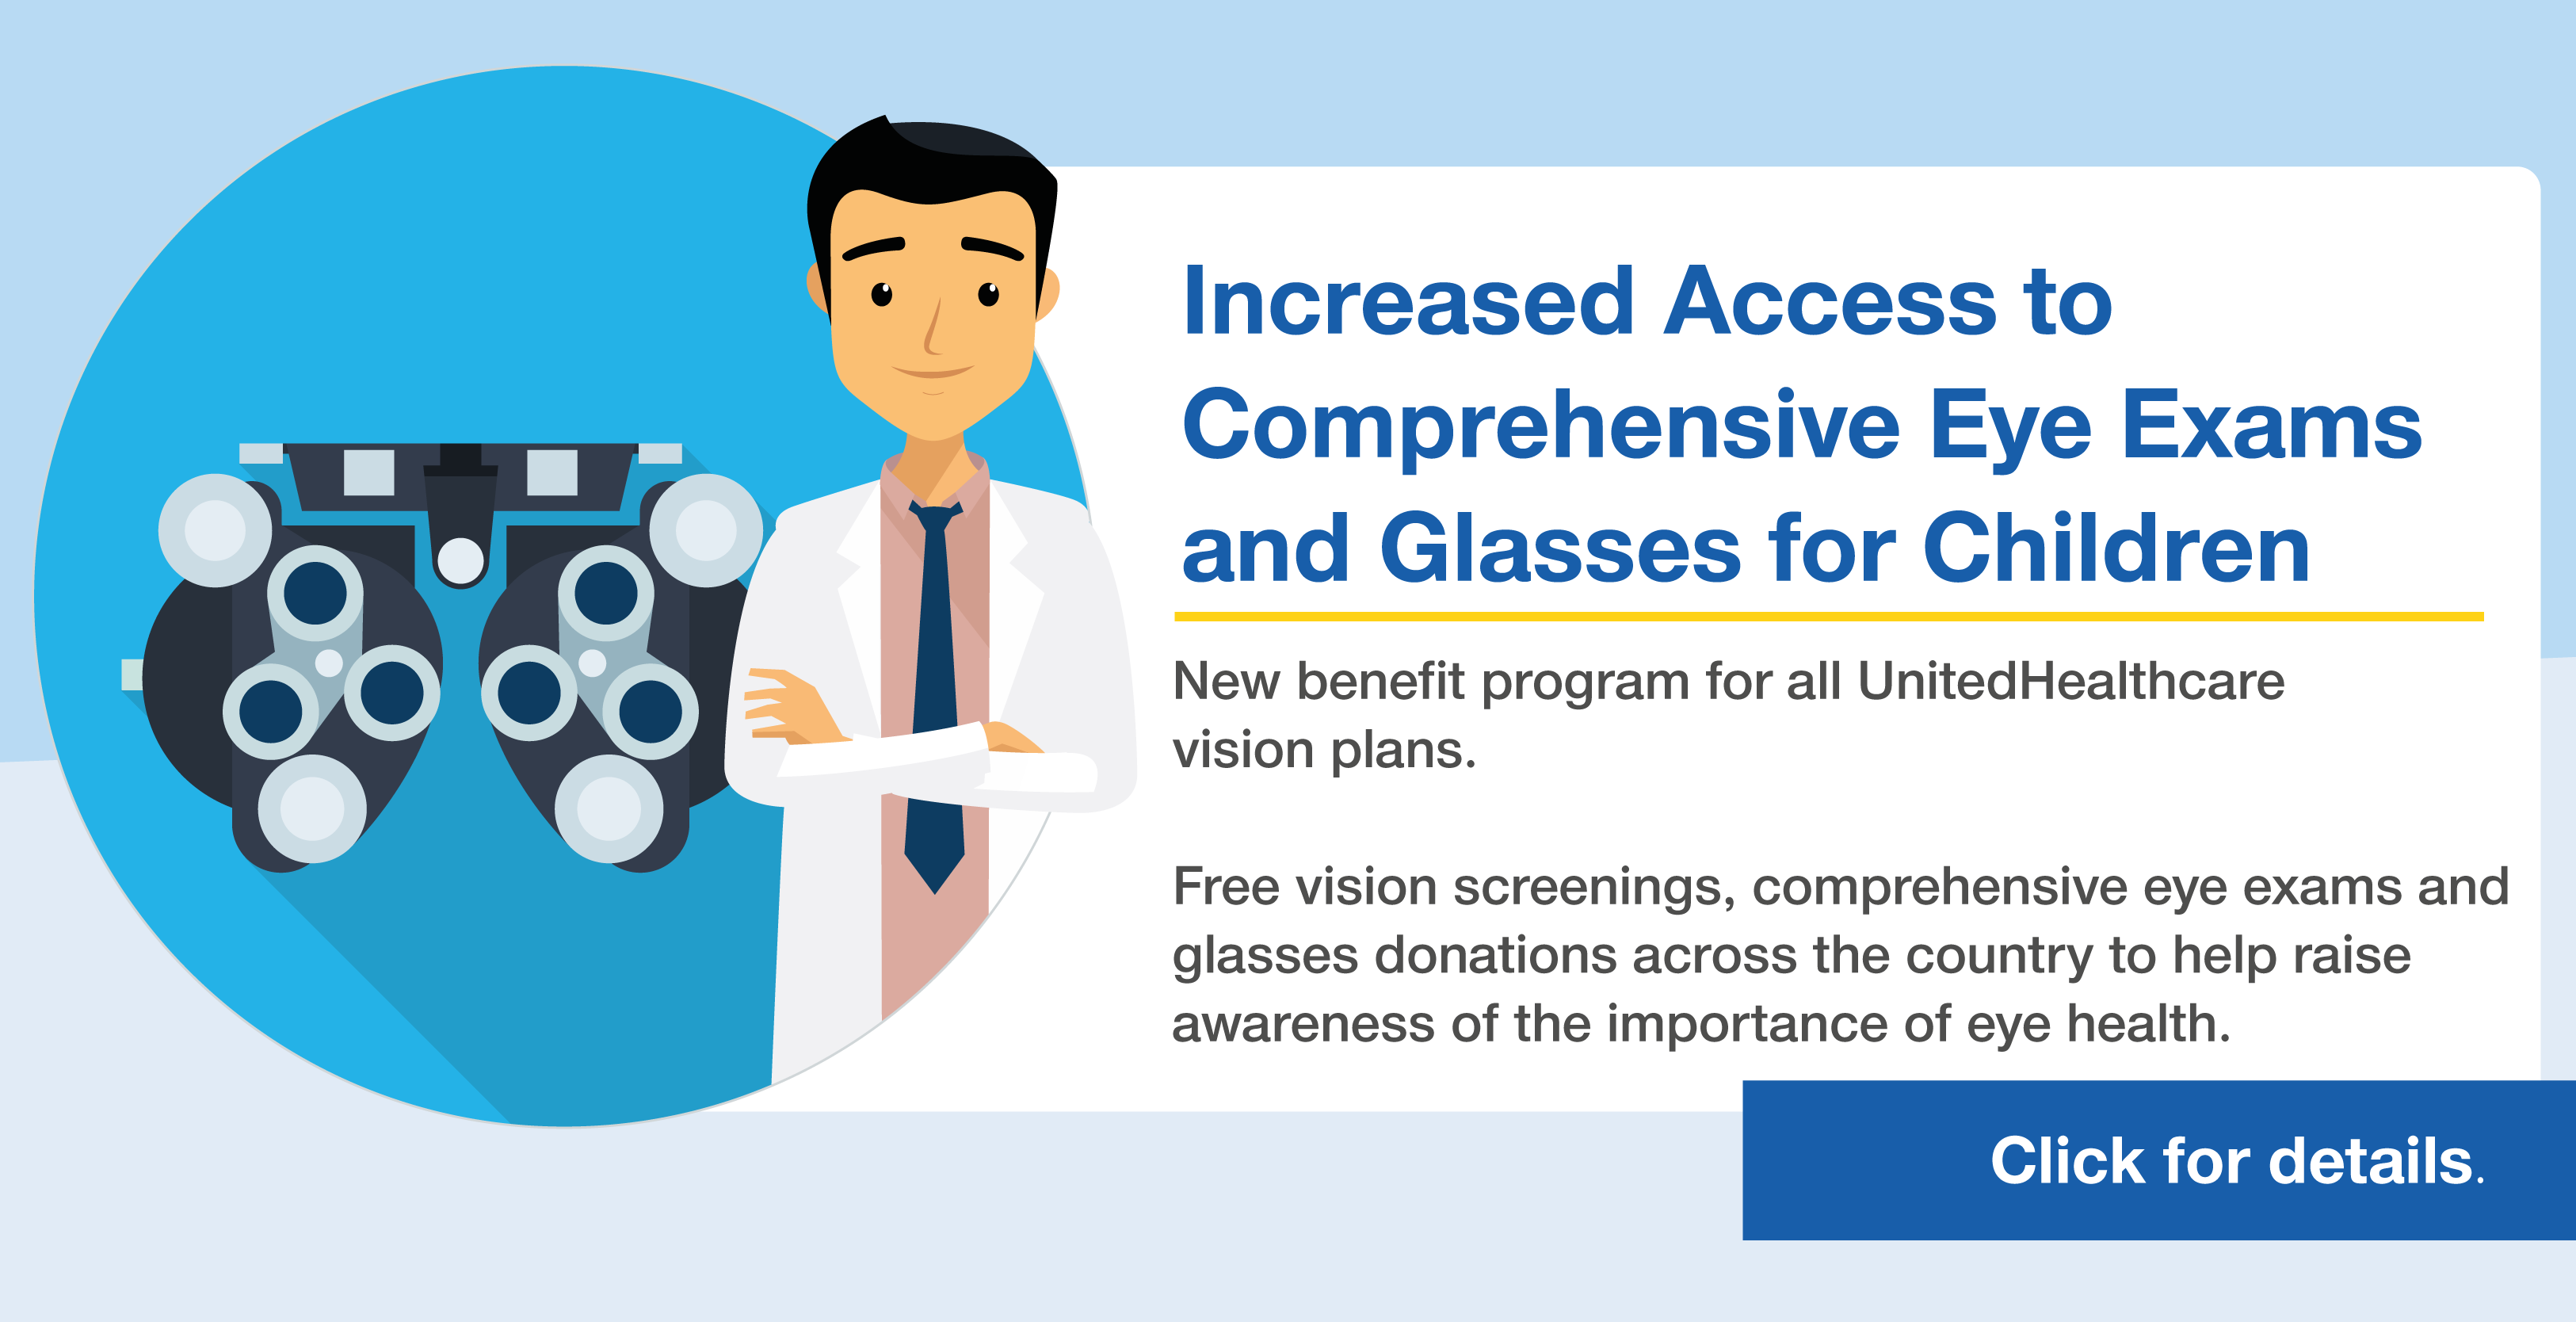 Increased access to comprehensive eye exams and glasses for children